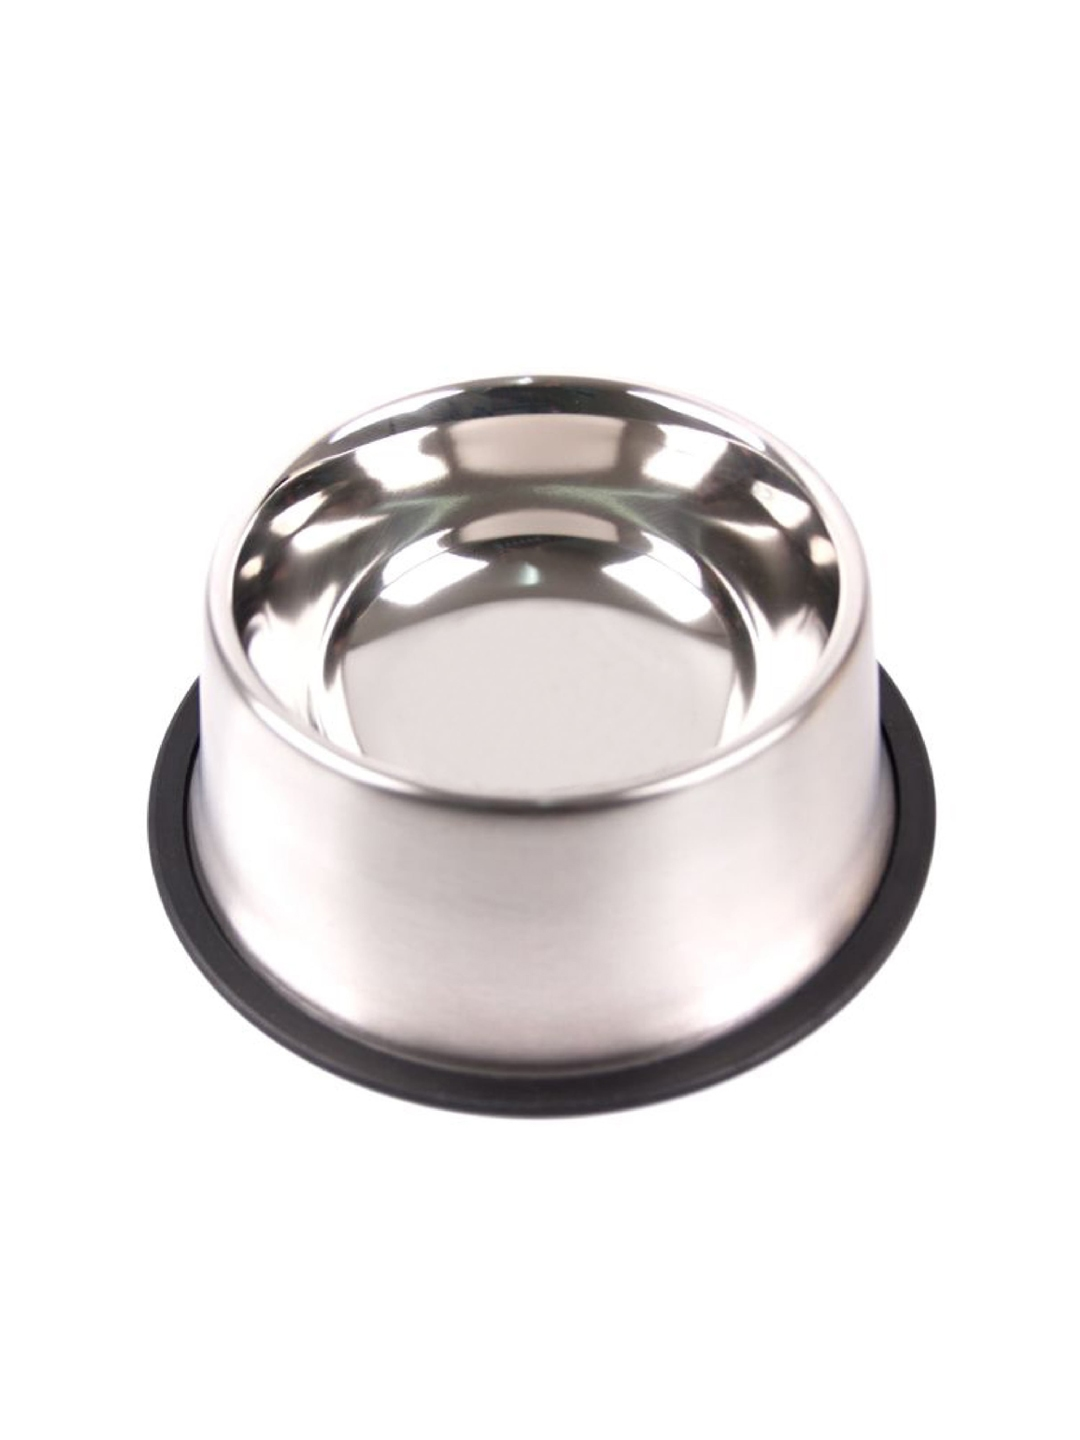 PETS EMPIRE Silver Toned Solid Stainless Steel Jumbo Non Skid Pet Bowl